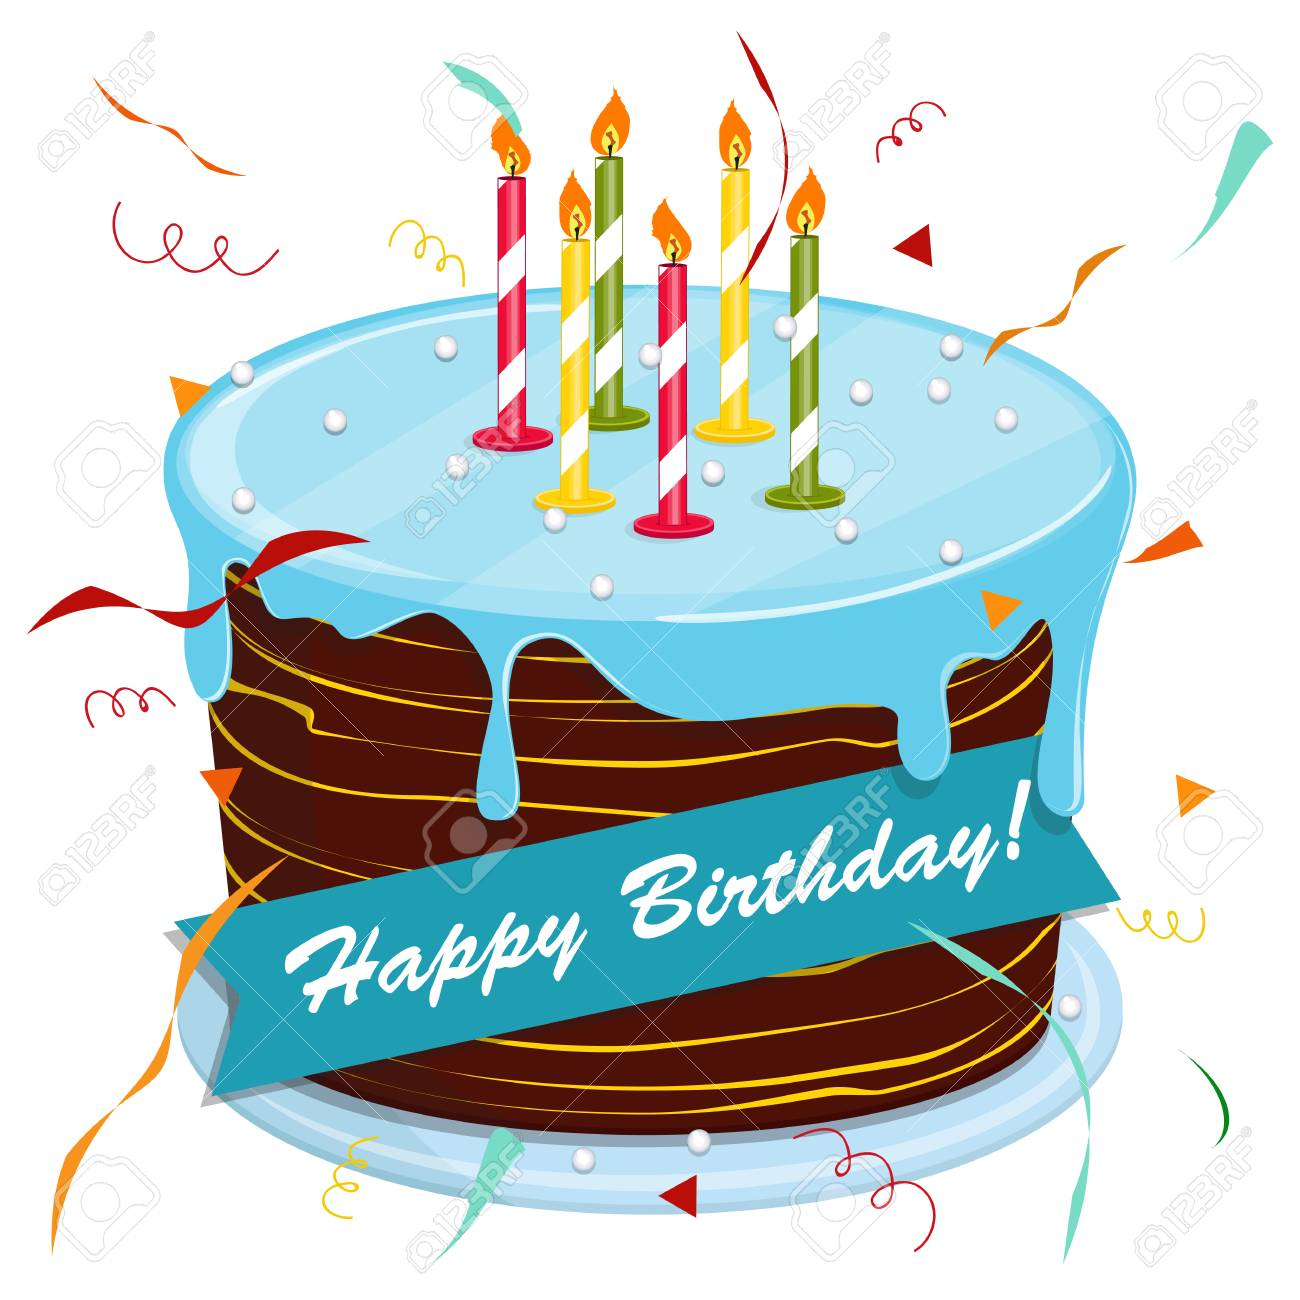 Cute Cartoon Happy Birthday Cake With Candles Blackboard With